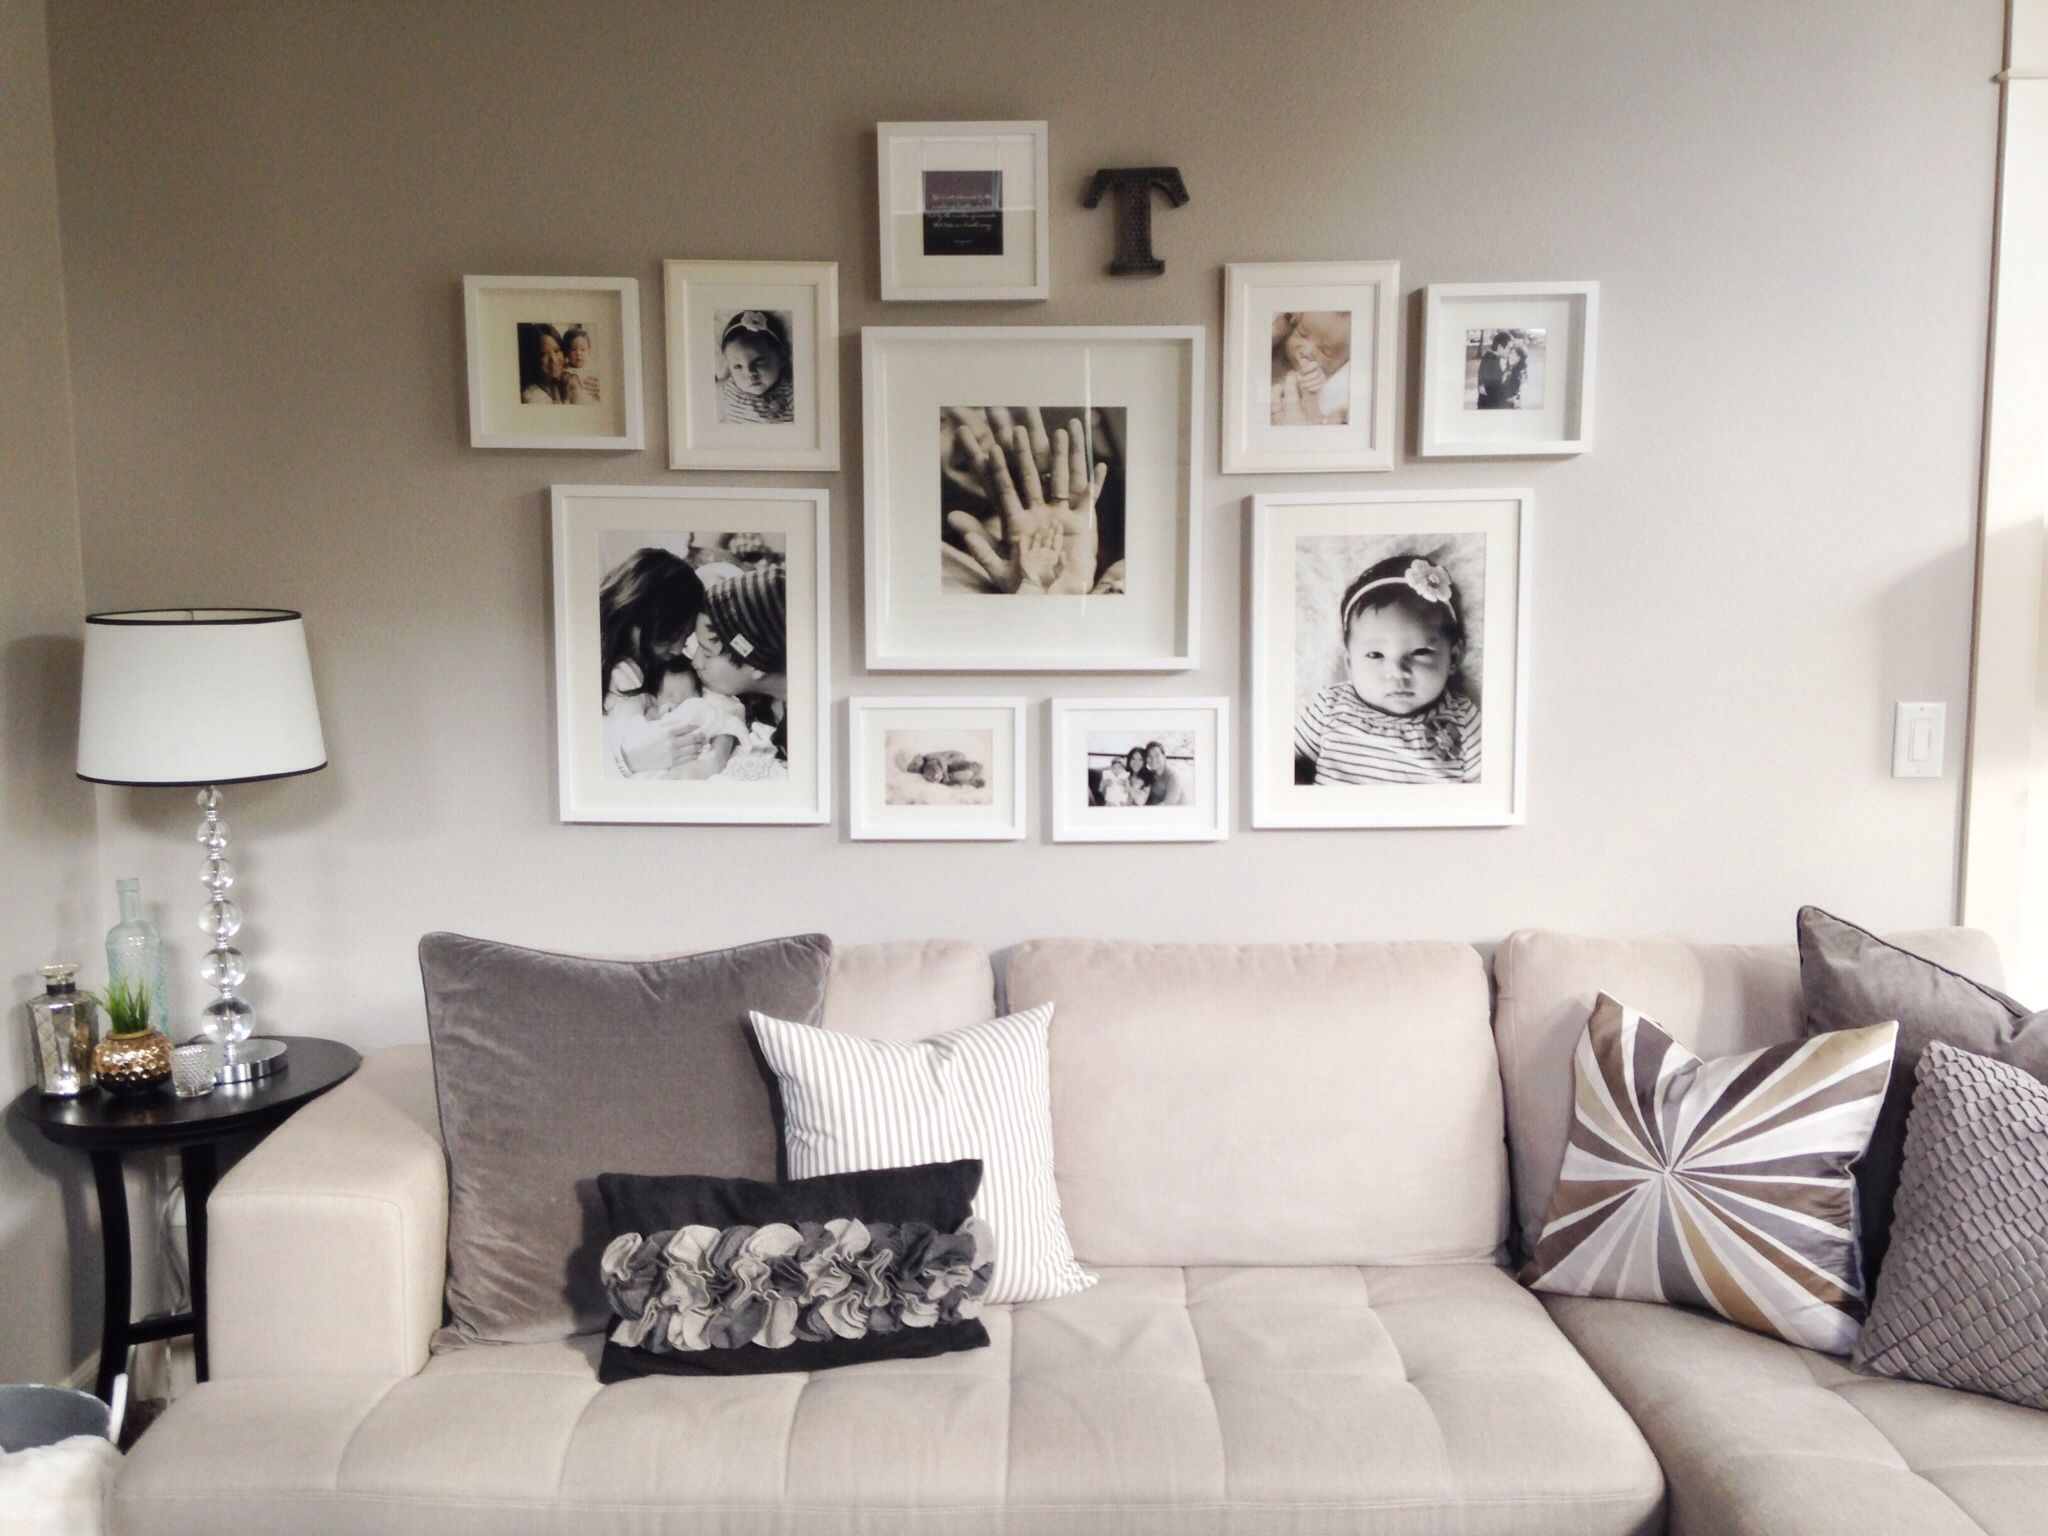 Tremendous My Photo Wall Collage Neutral Tones All White Ikea Frames Largest Home Design Picture Inspirations Pitcheantrous